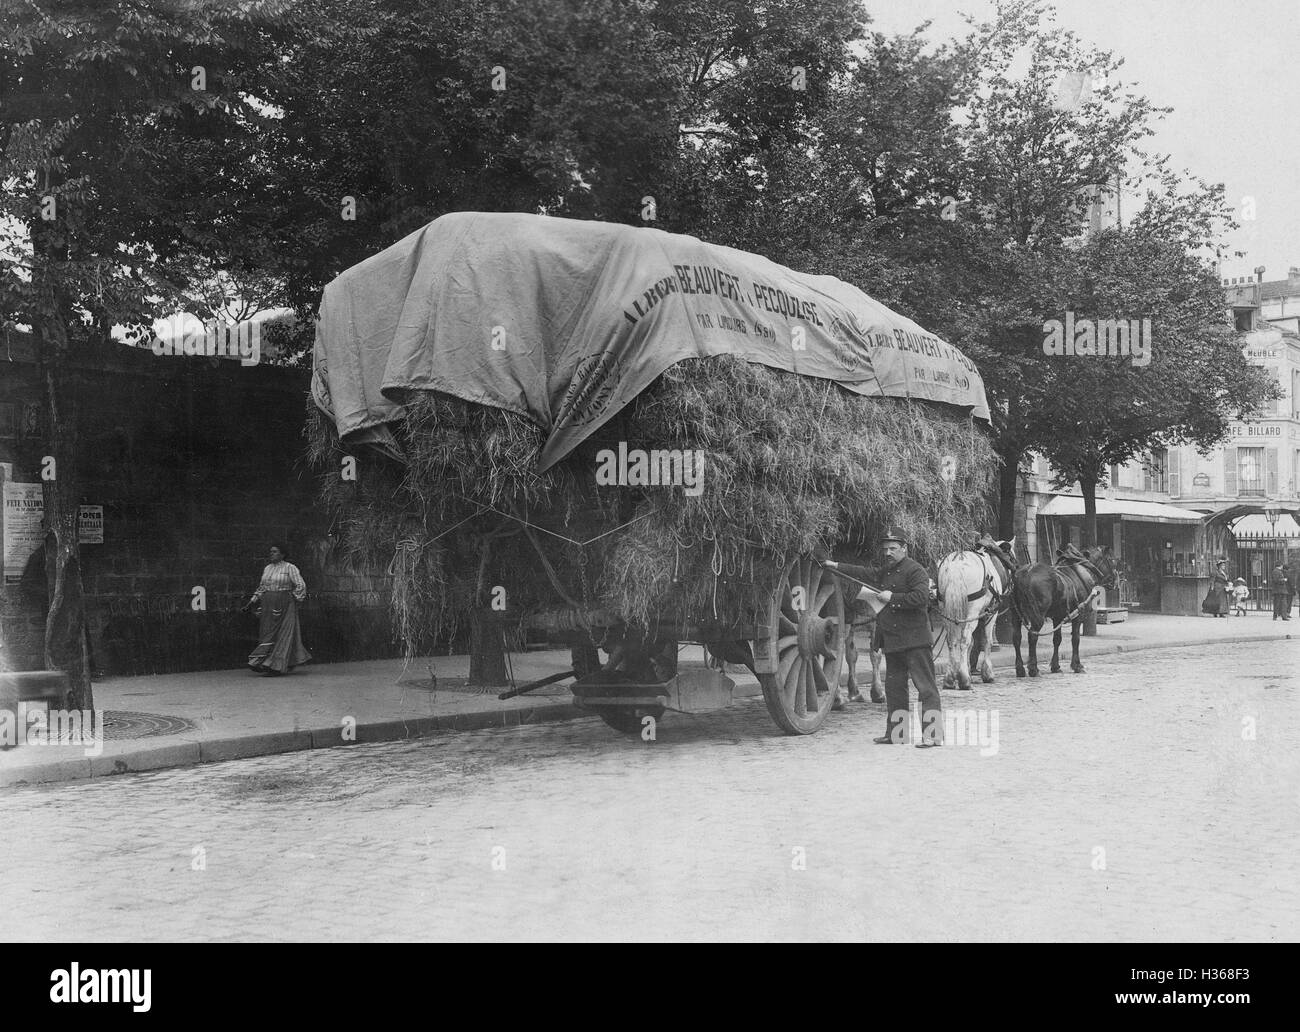 Searching a straw wagon after contraband in Paris, 1911 - Stock Image